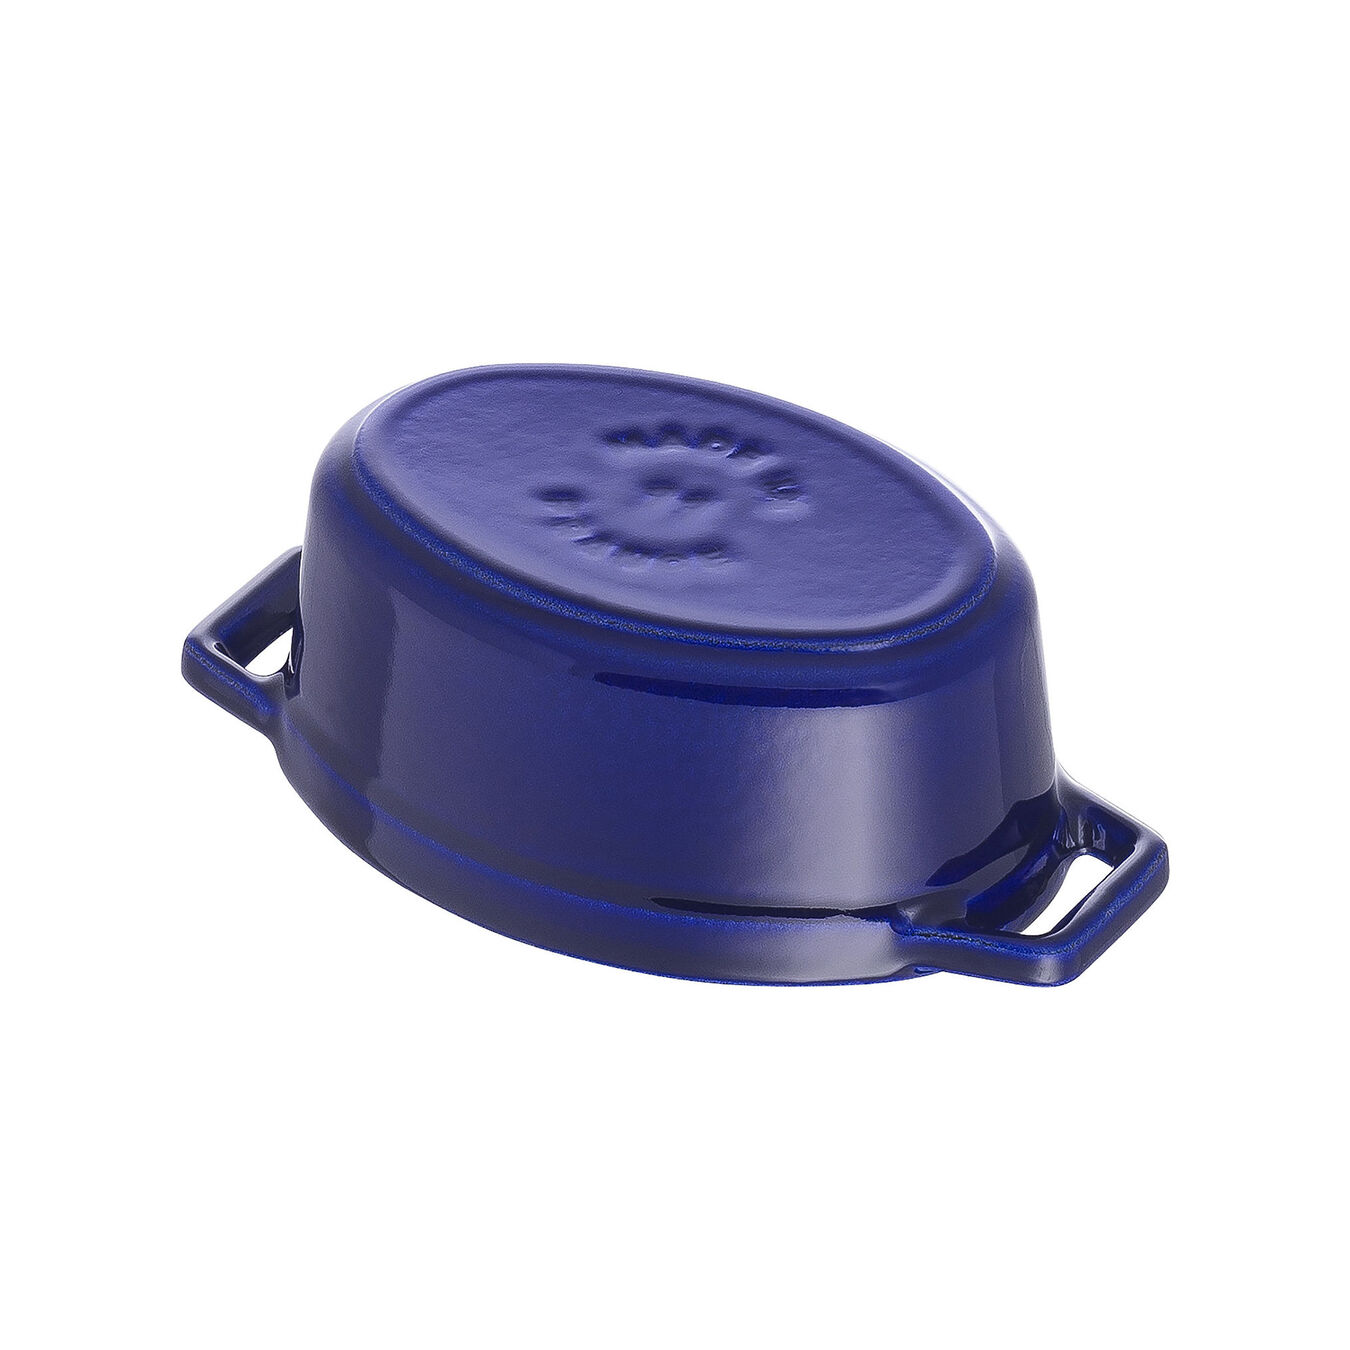 250 ml Cast iron oval Mini Cocotte, Dark-Blue,,large 4